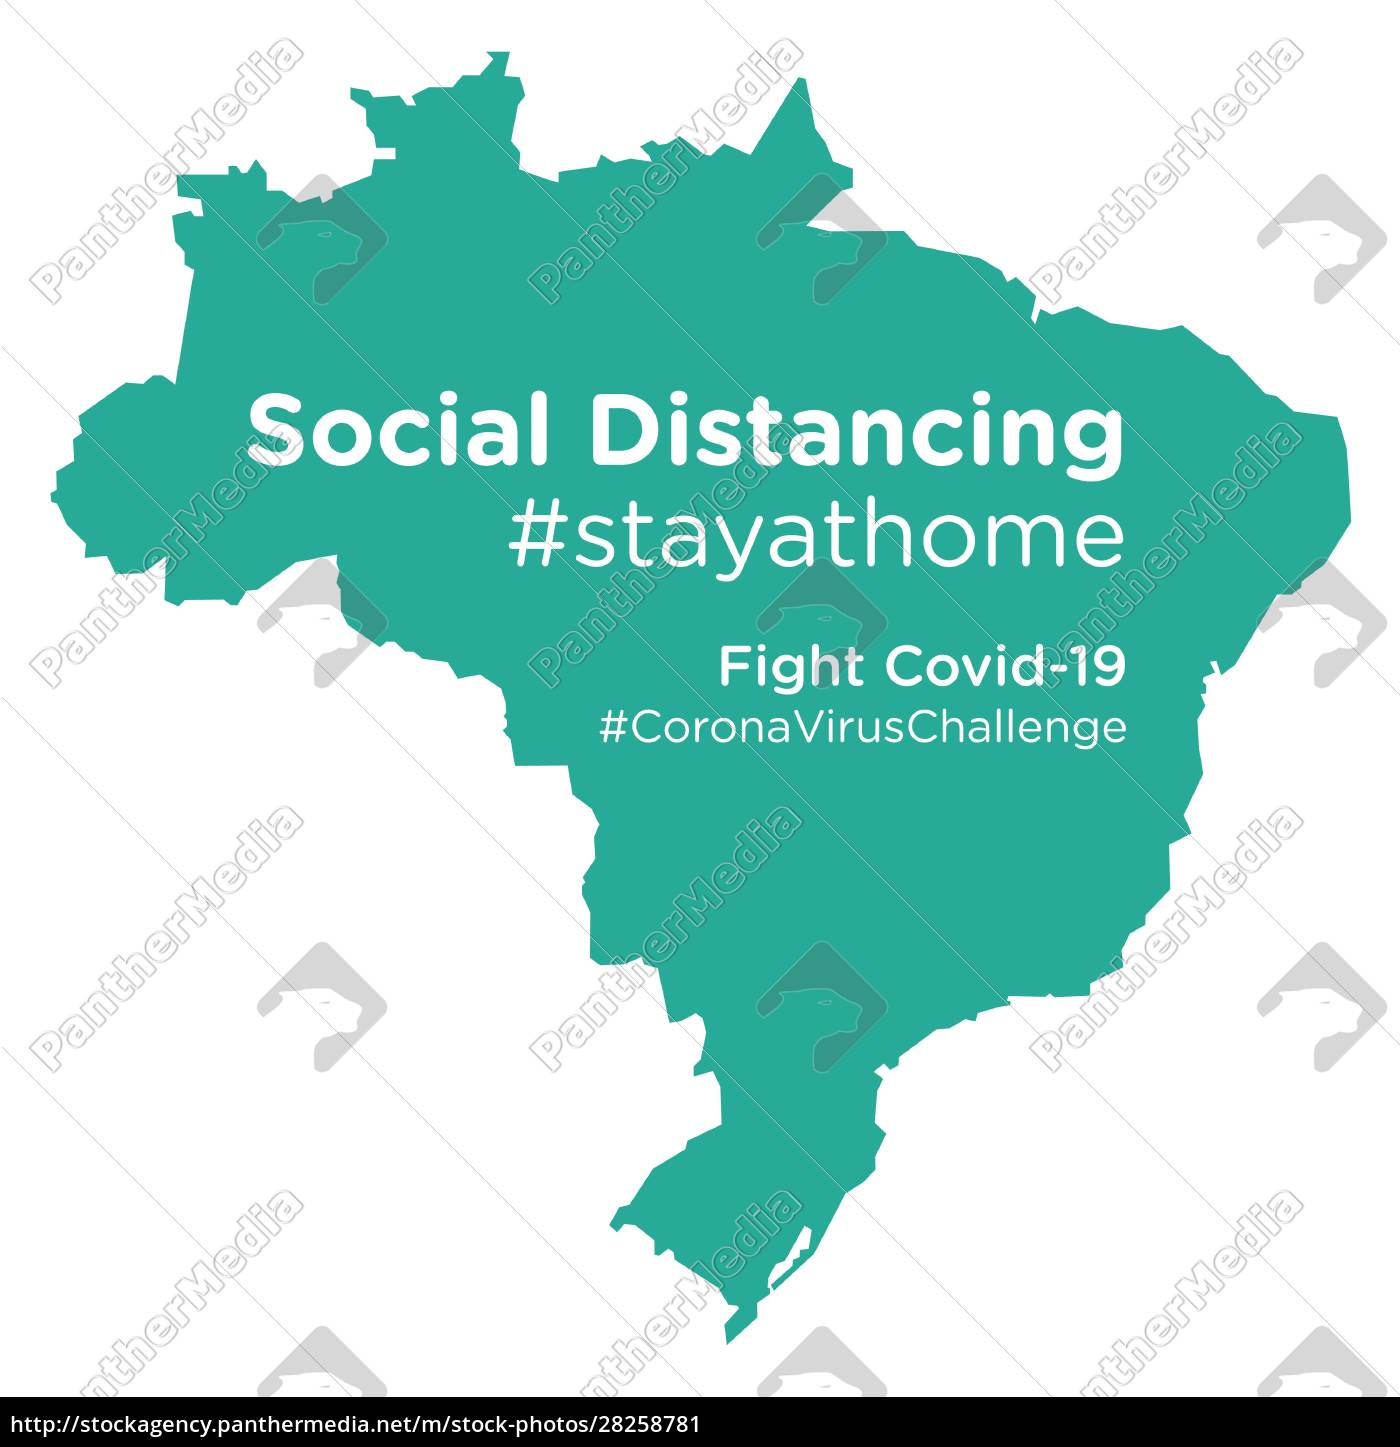 brazil, map, with, social, distancing, #stayathome - 28258781